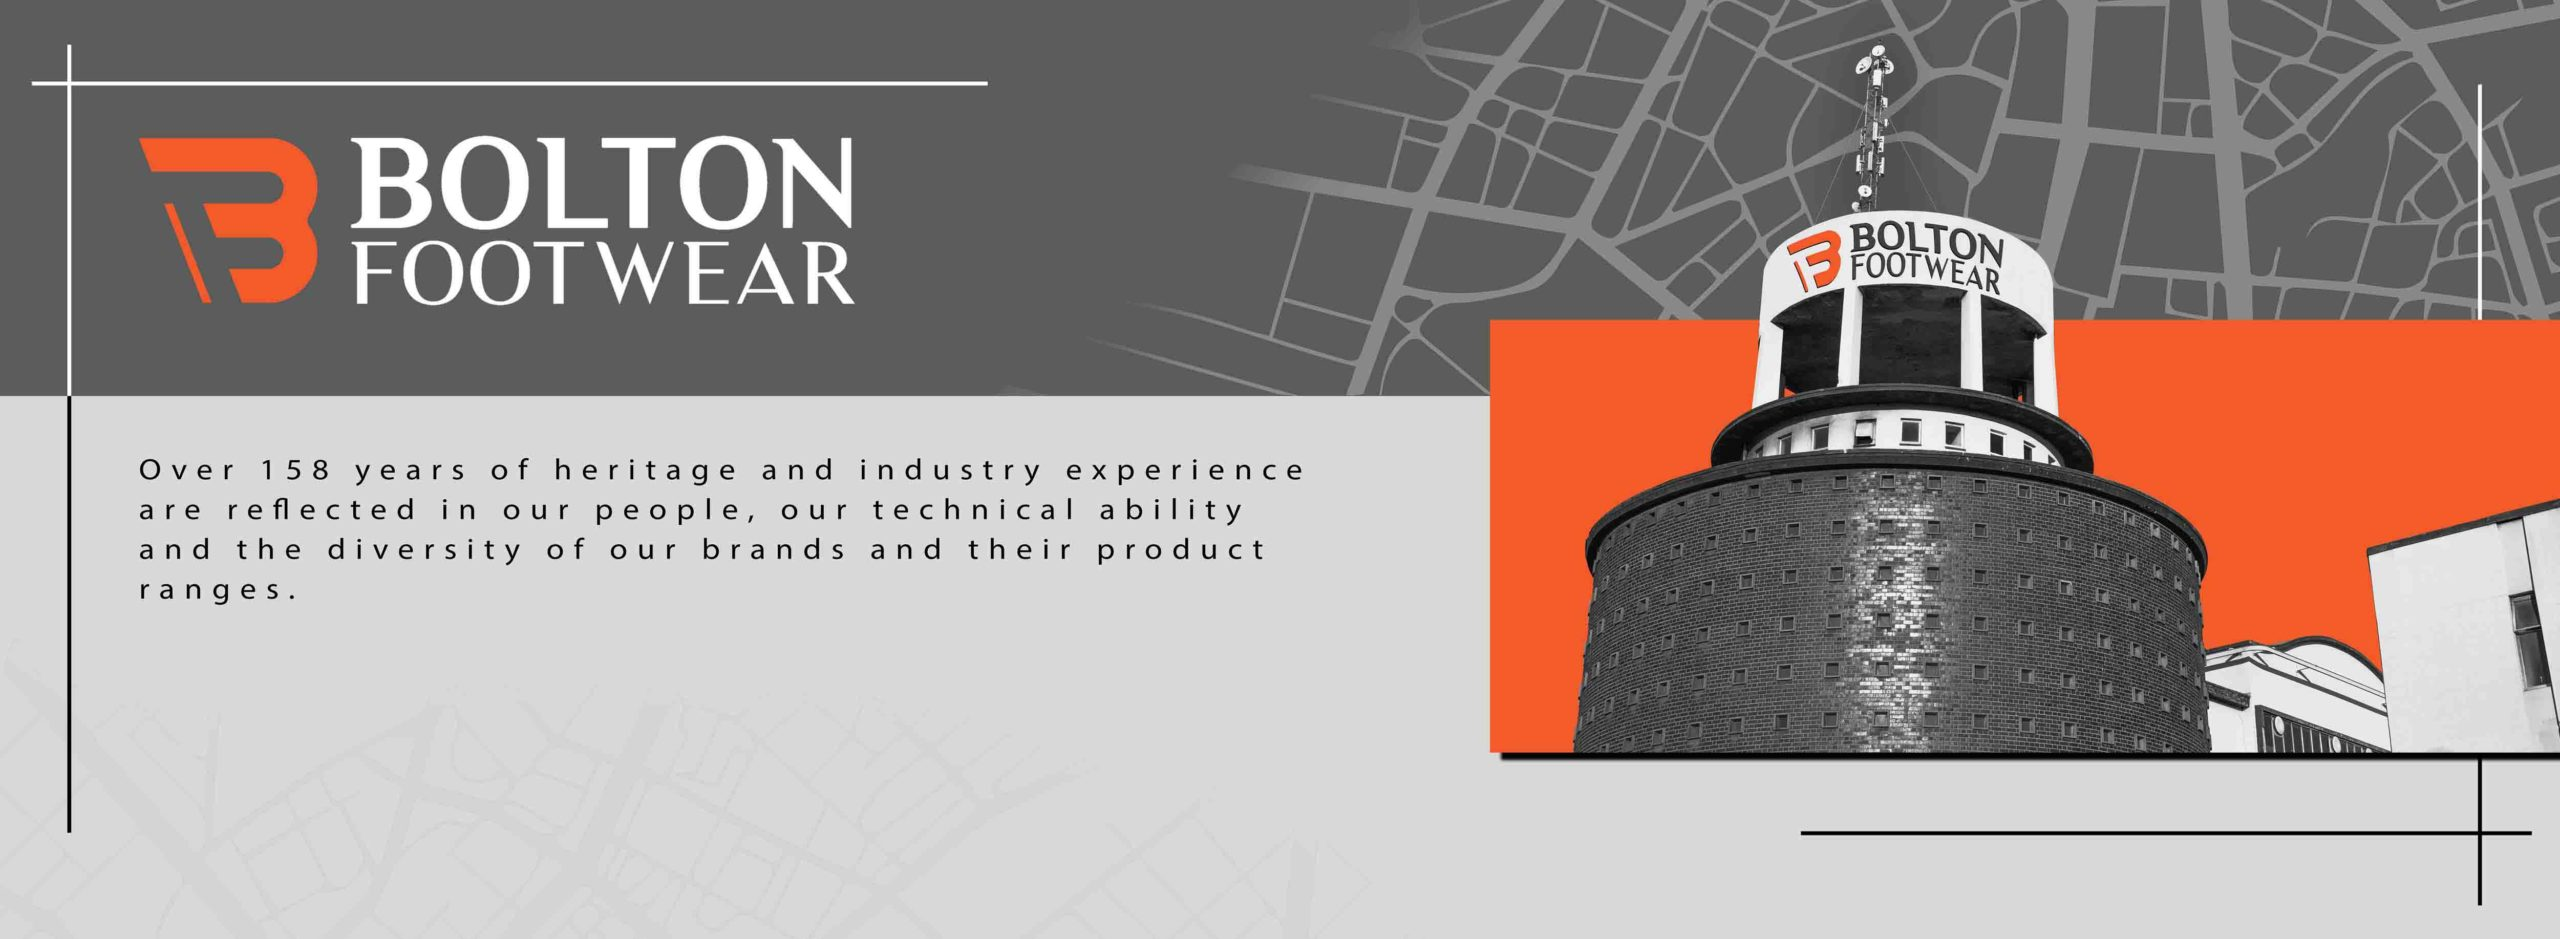 Learn More About Bolton Footwear - Bolton Shoes